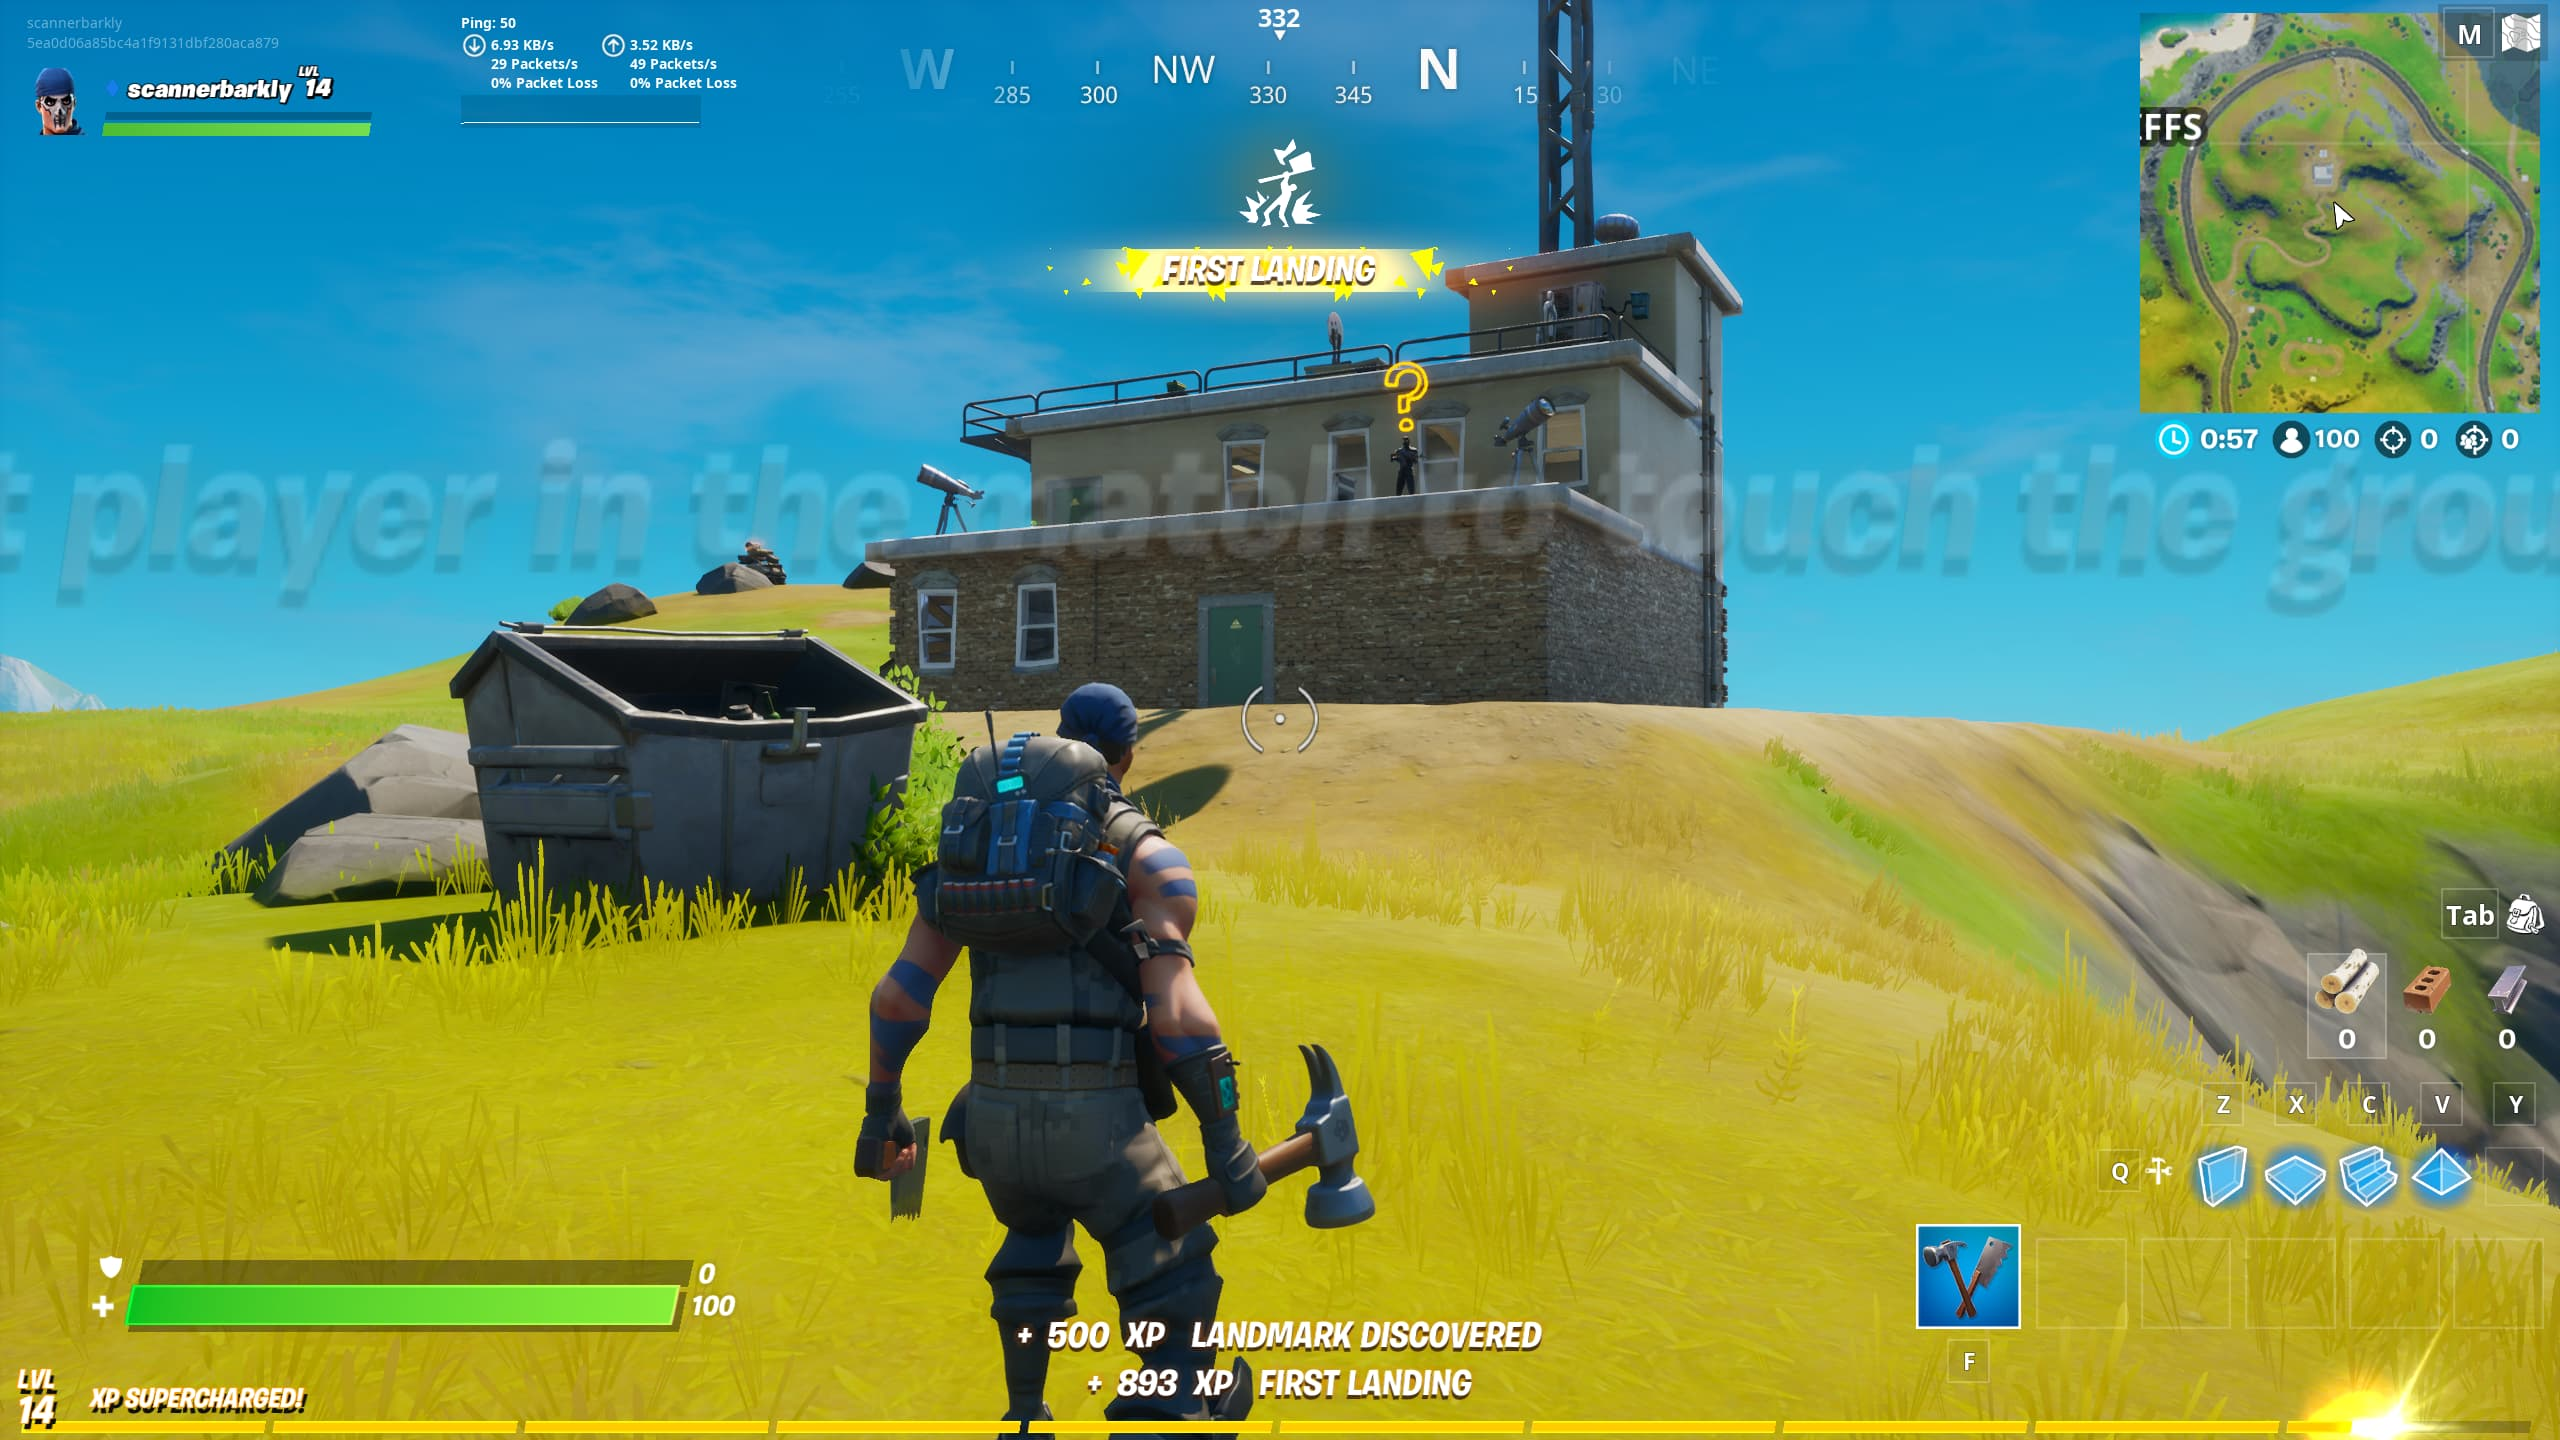 Where To Enter A Shadow Safe House In Fortnite Chapter 2 Season 2 Esports Fast